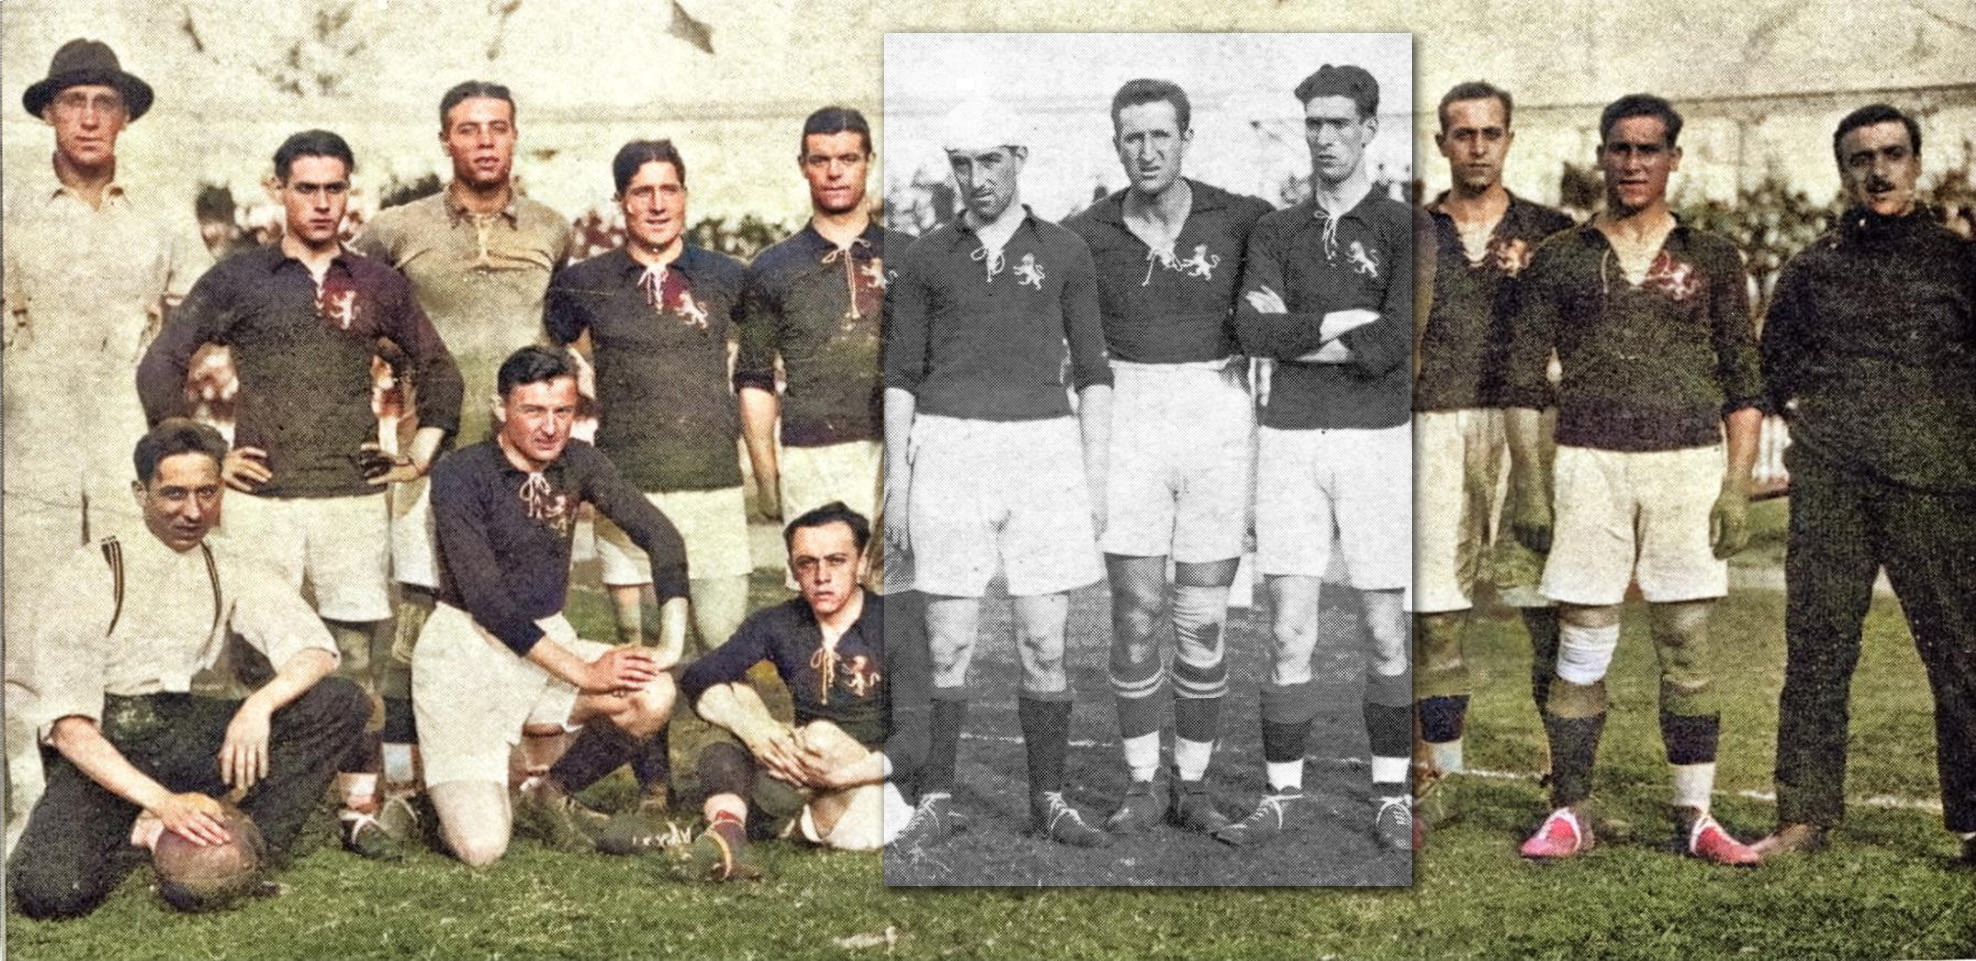 seleccion espanola 1920 blanco y negro a color